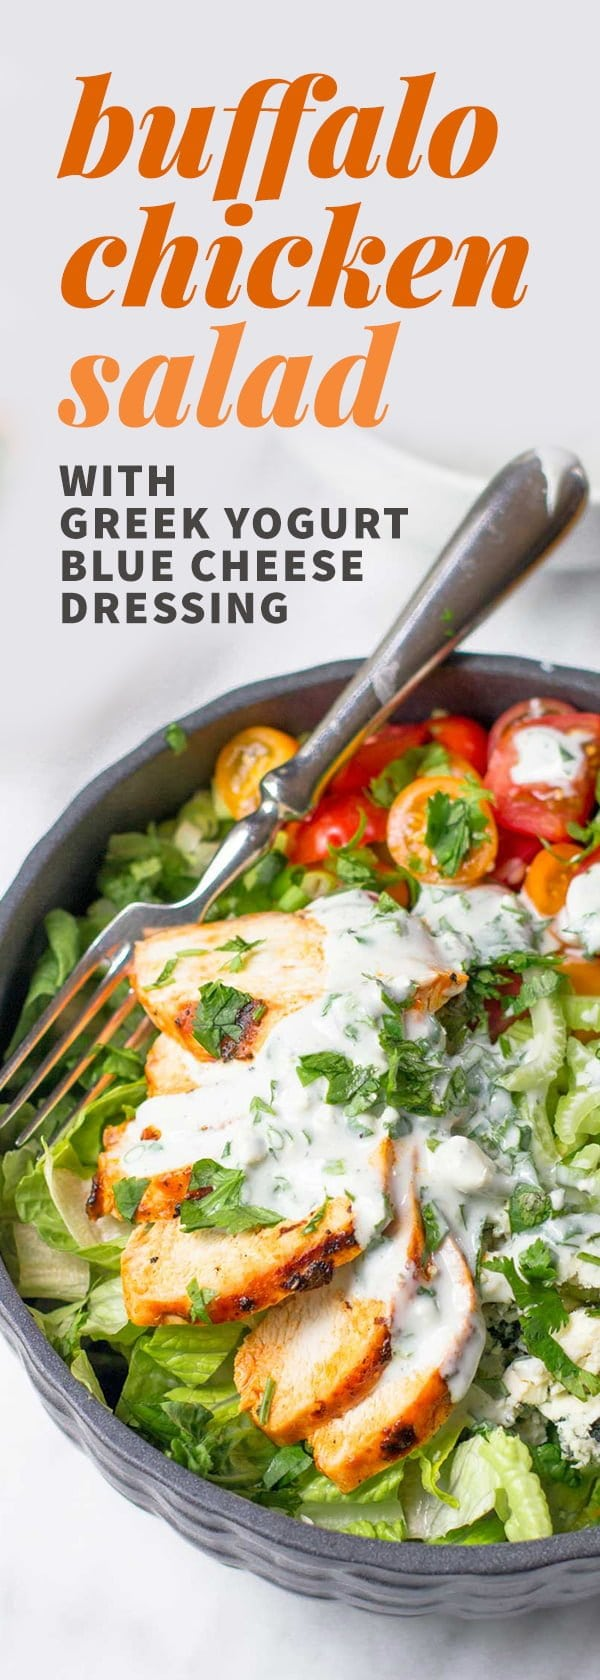 Grilled Buffalo Chicken Salad with Greek Yogurt Blue Cheese Dressing